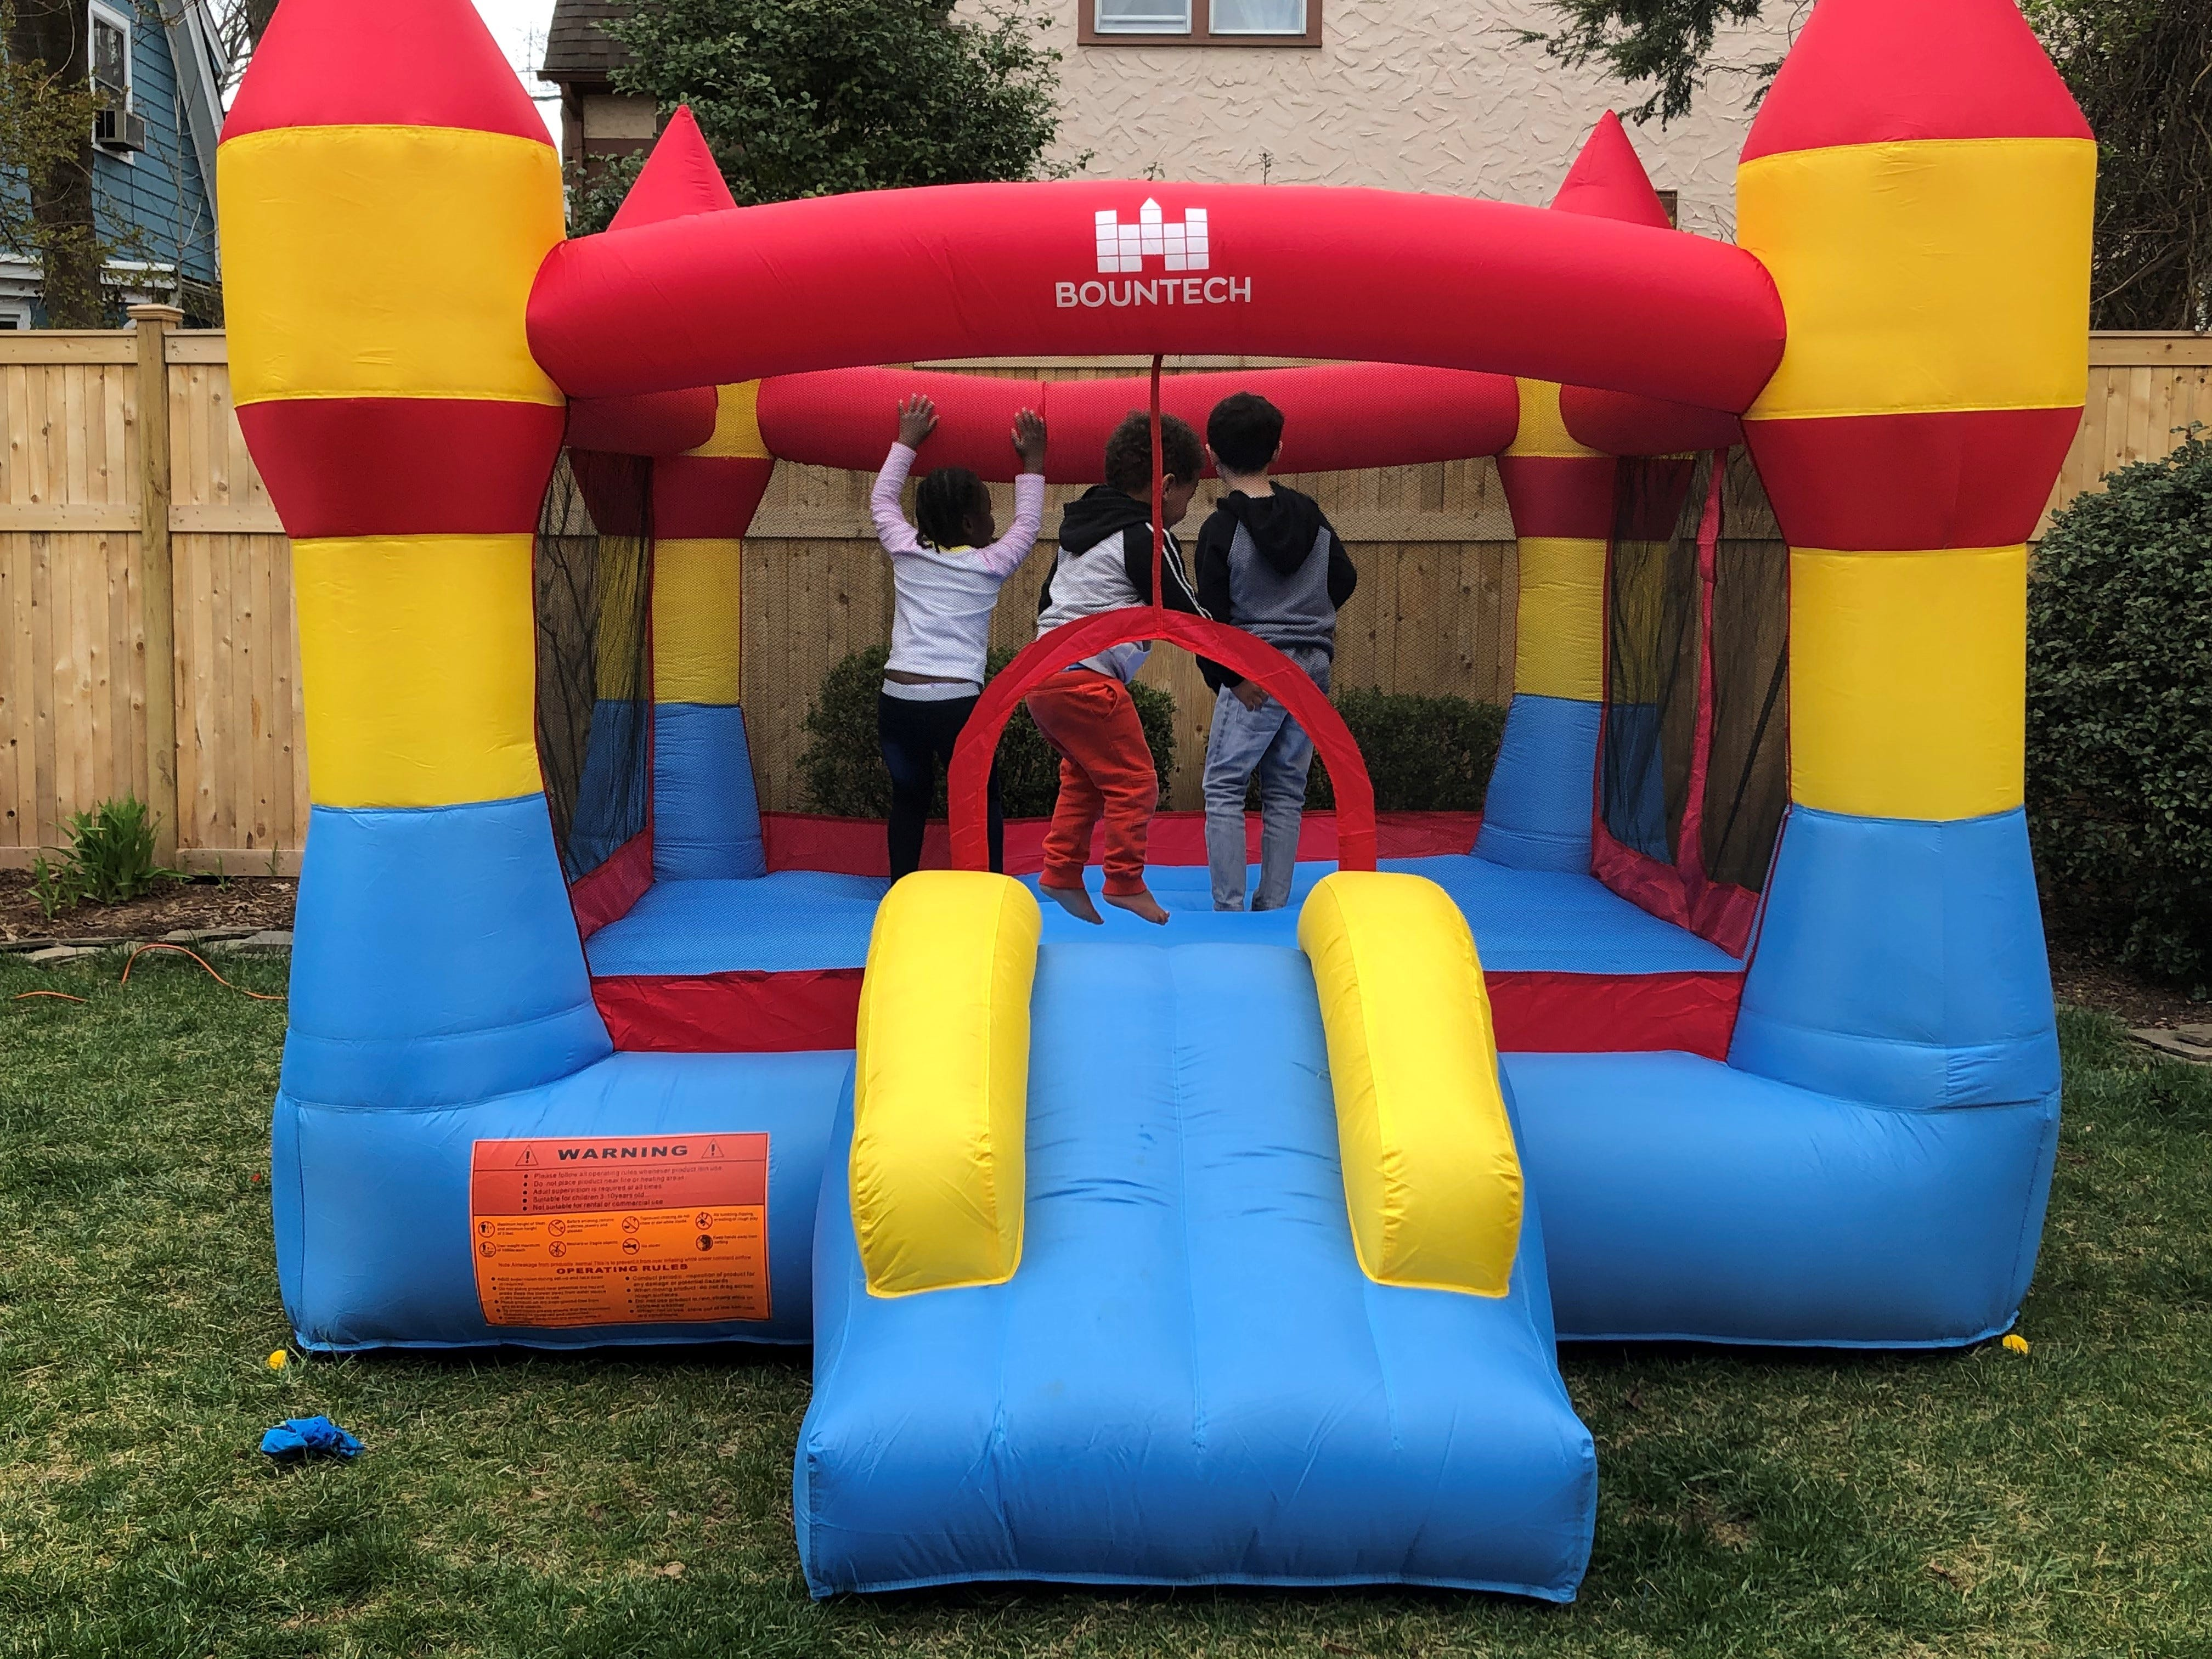 Bounce house, trampoline, outdoor toy sales jump as families practice COVID-19 social distancing